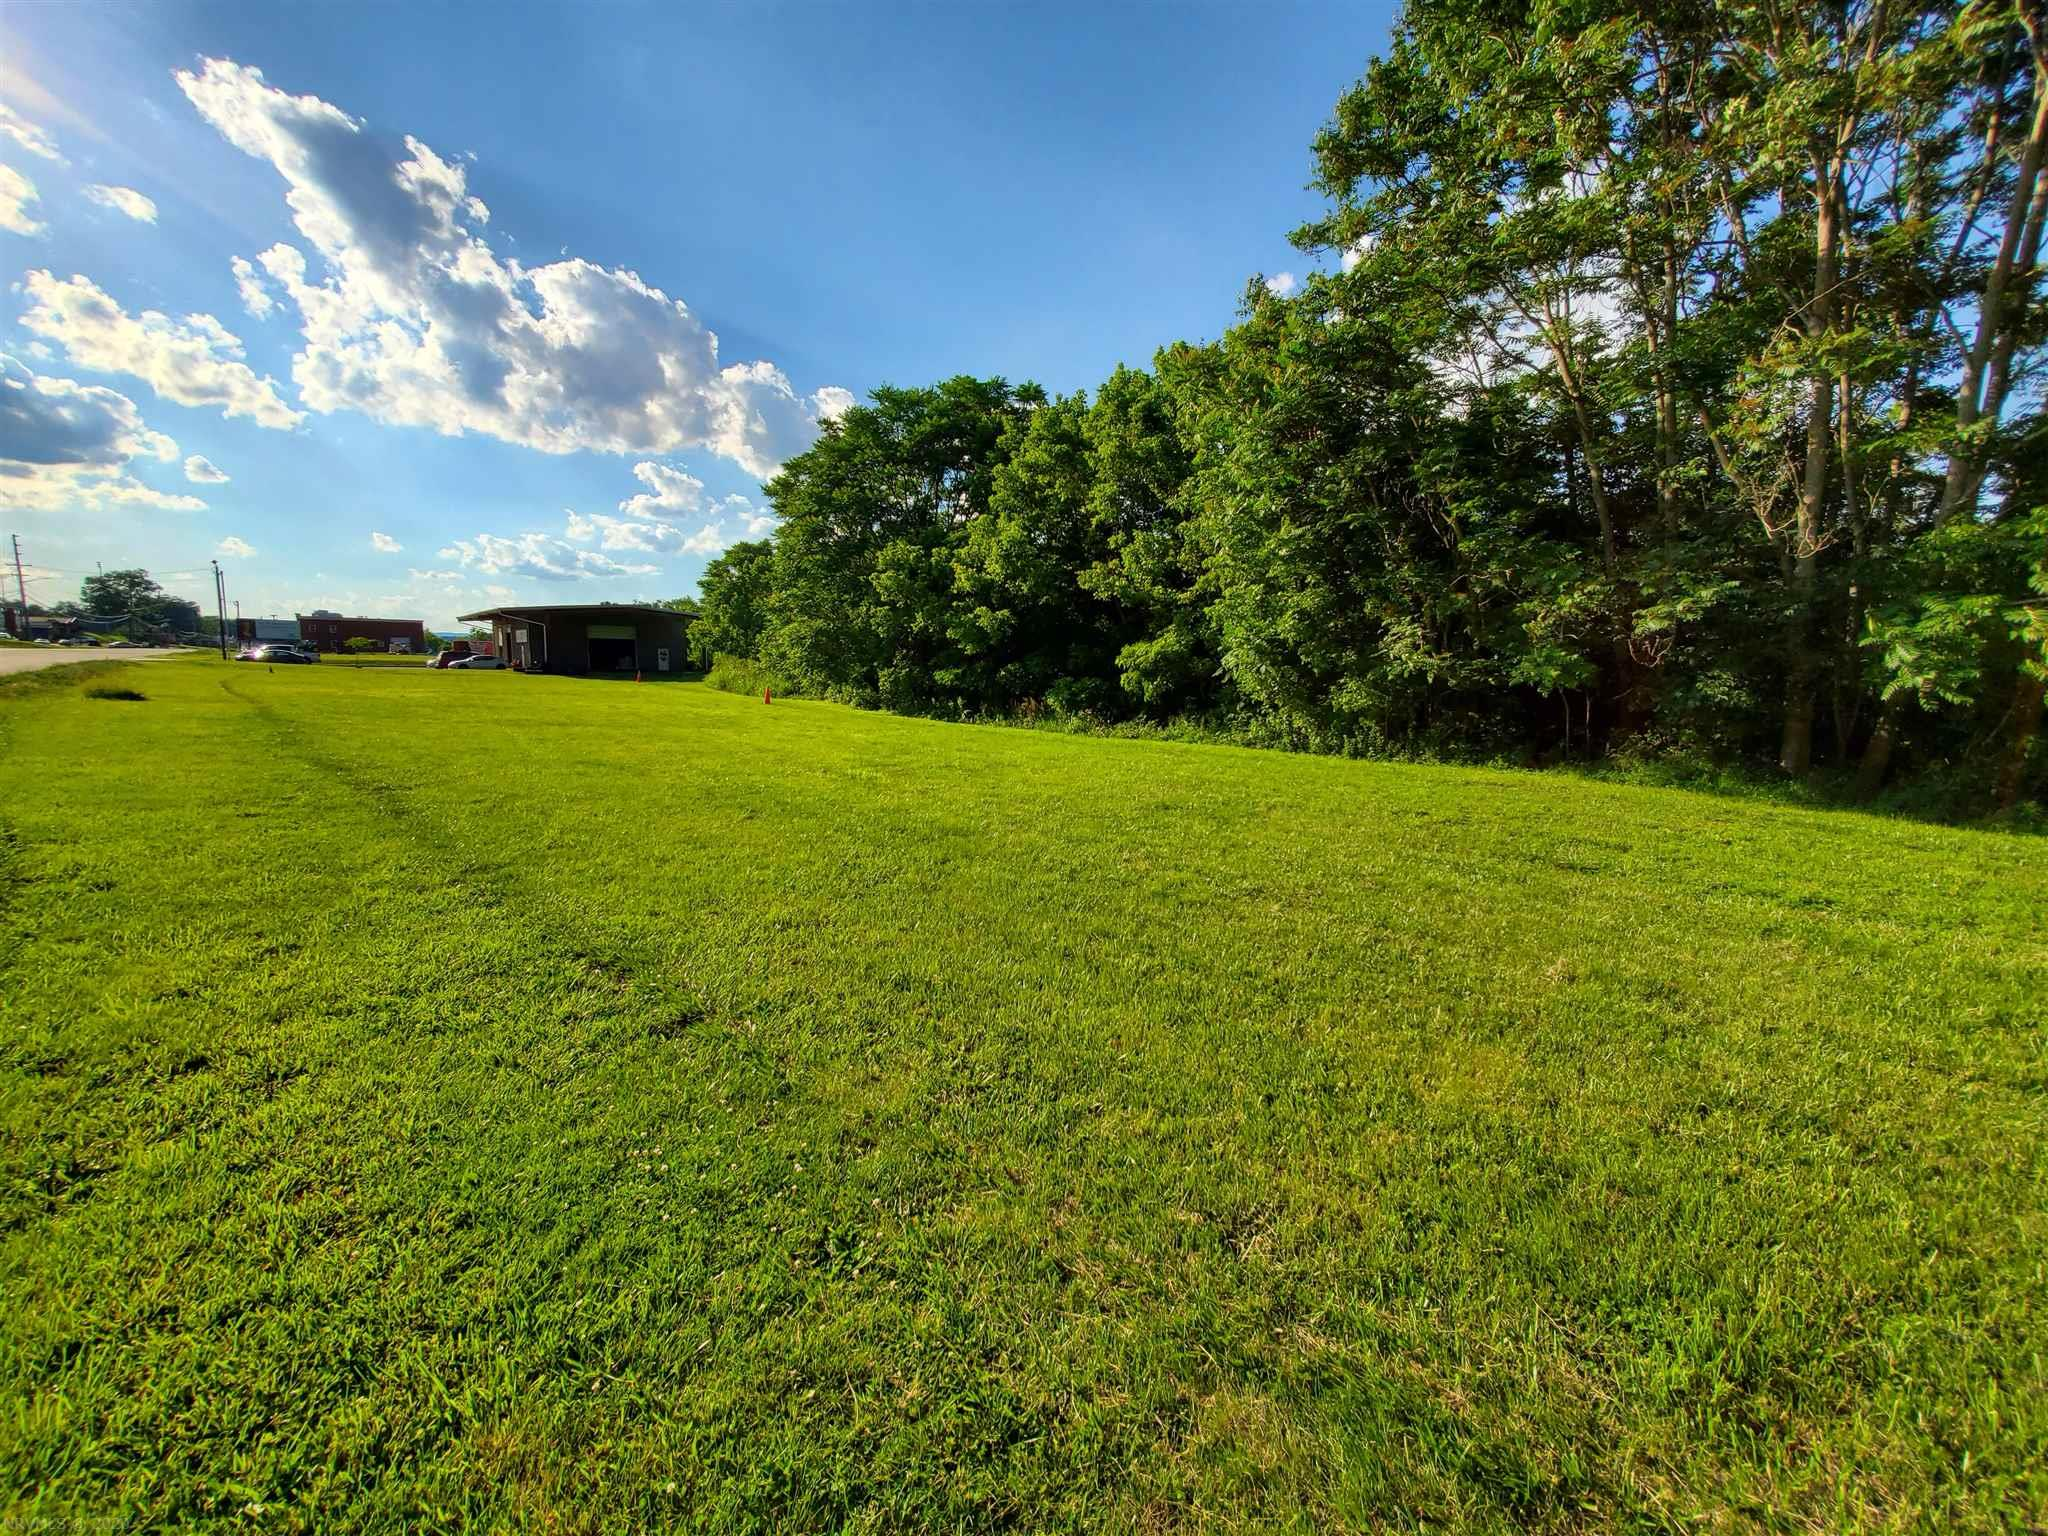 Commercial lot conveniently located in Radford. Being minutes from Radford University and Downtown Radford, this lot has great potential! Adjoining 0.5 acre lot also listed for $39,000.